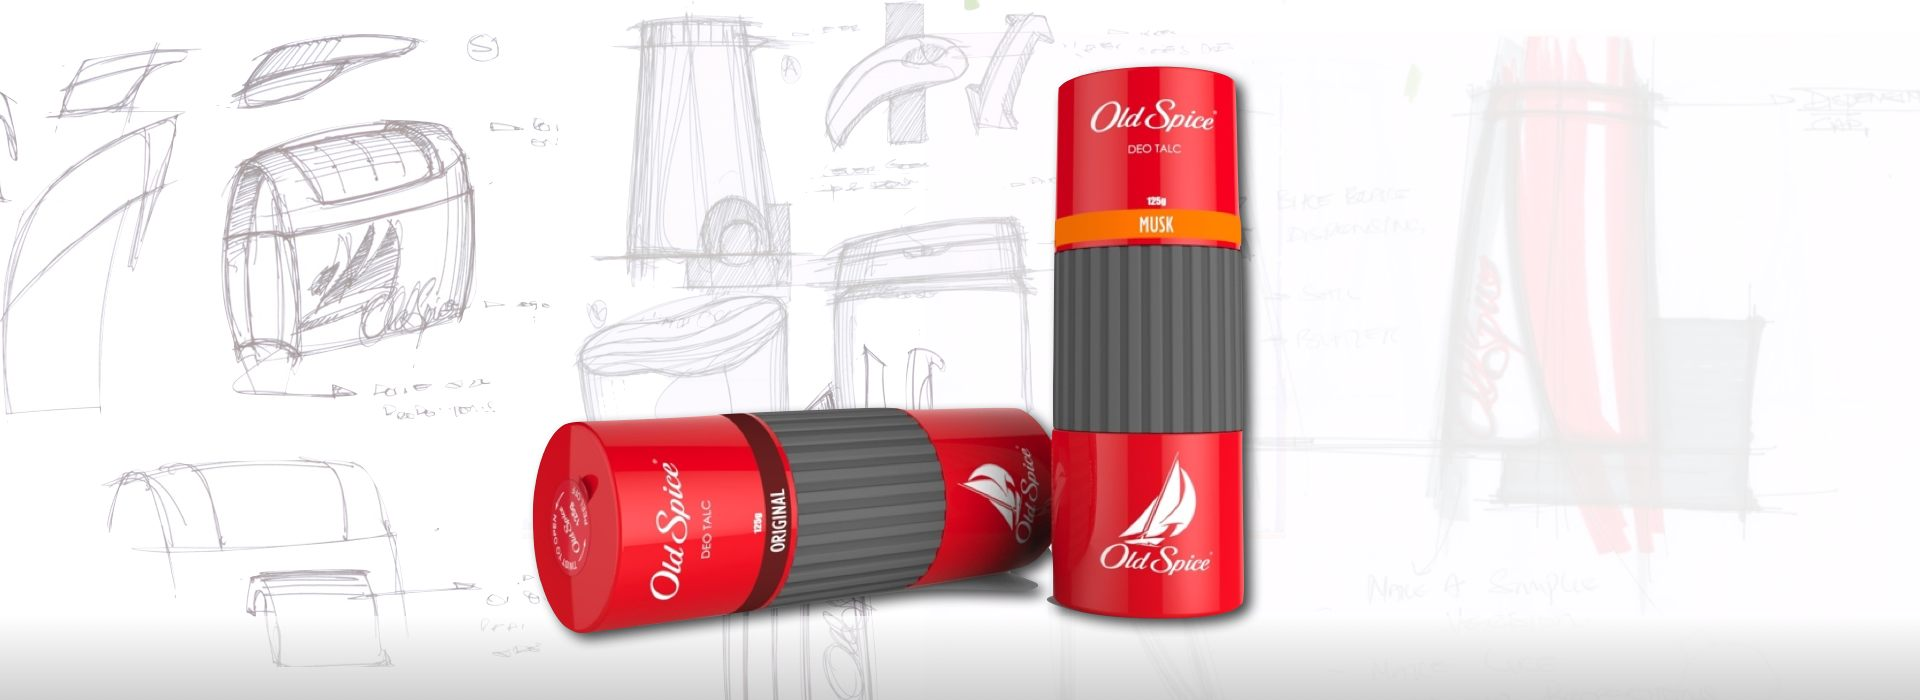 Packaging Old Spice Deo Talc